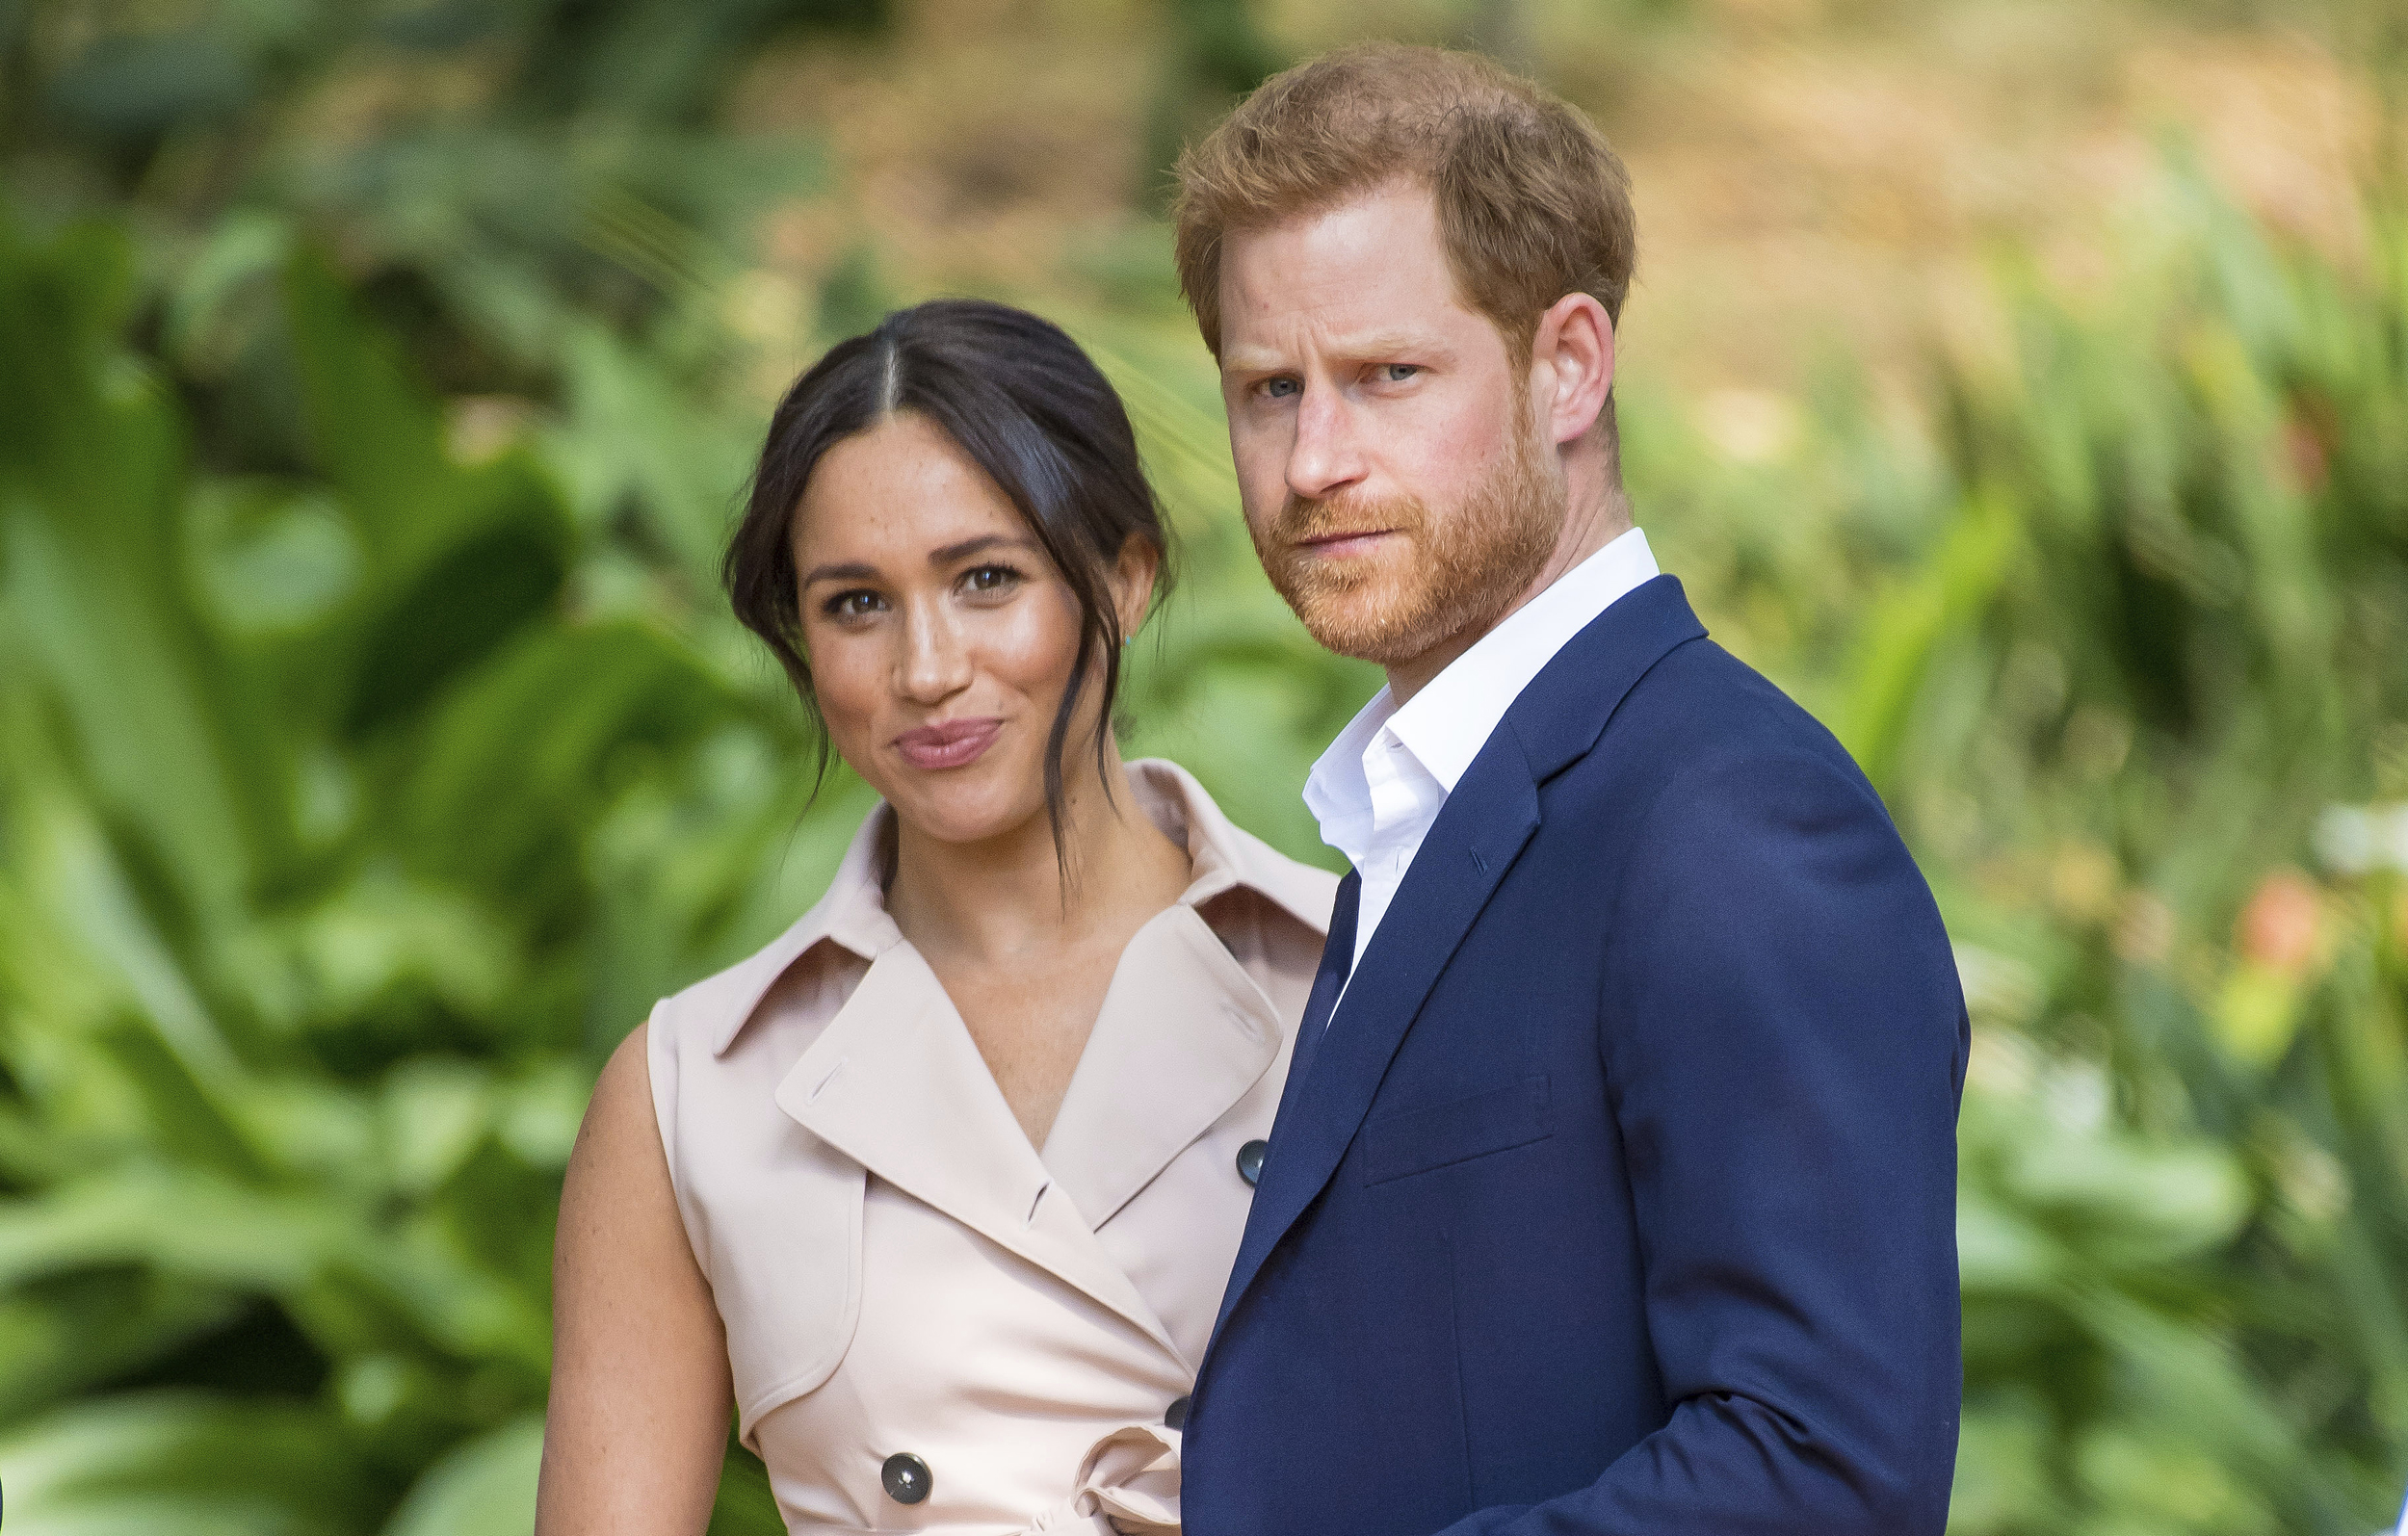 harry and meghan s royal relocation to canada surprised the queen but makes a lot of sense https www nbcnews com think opinion harry meghan s royal relocation canada surprised queen makes lot ncna1119816